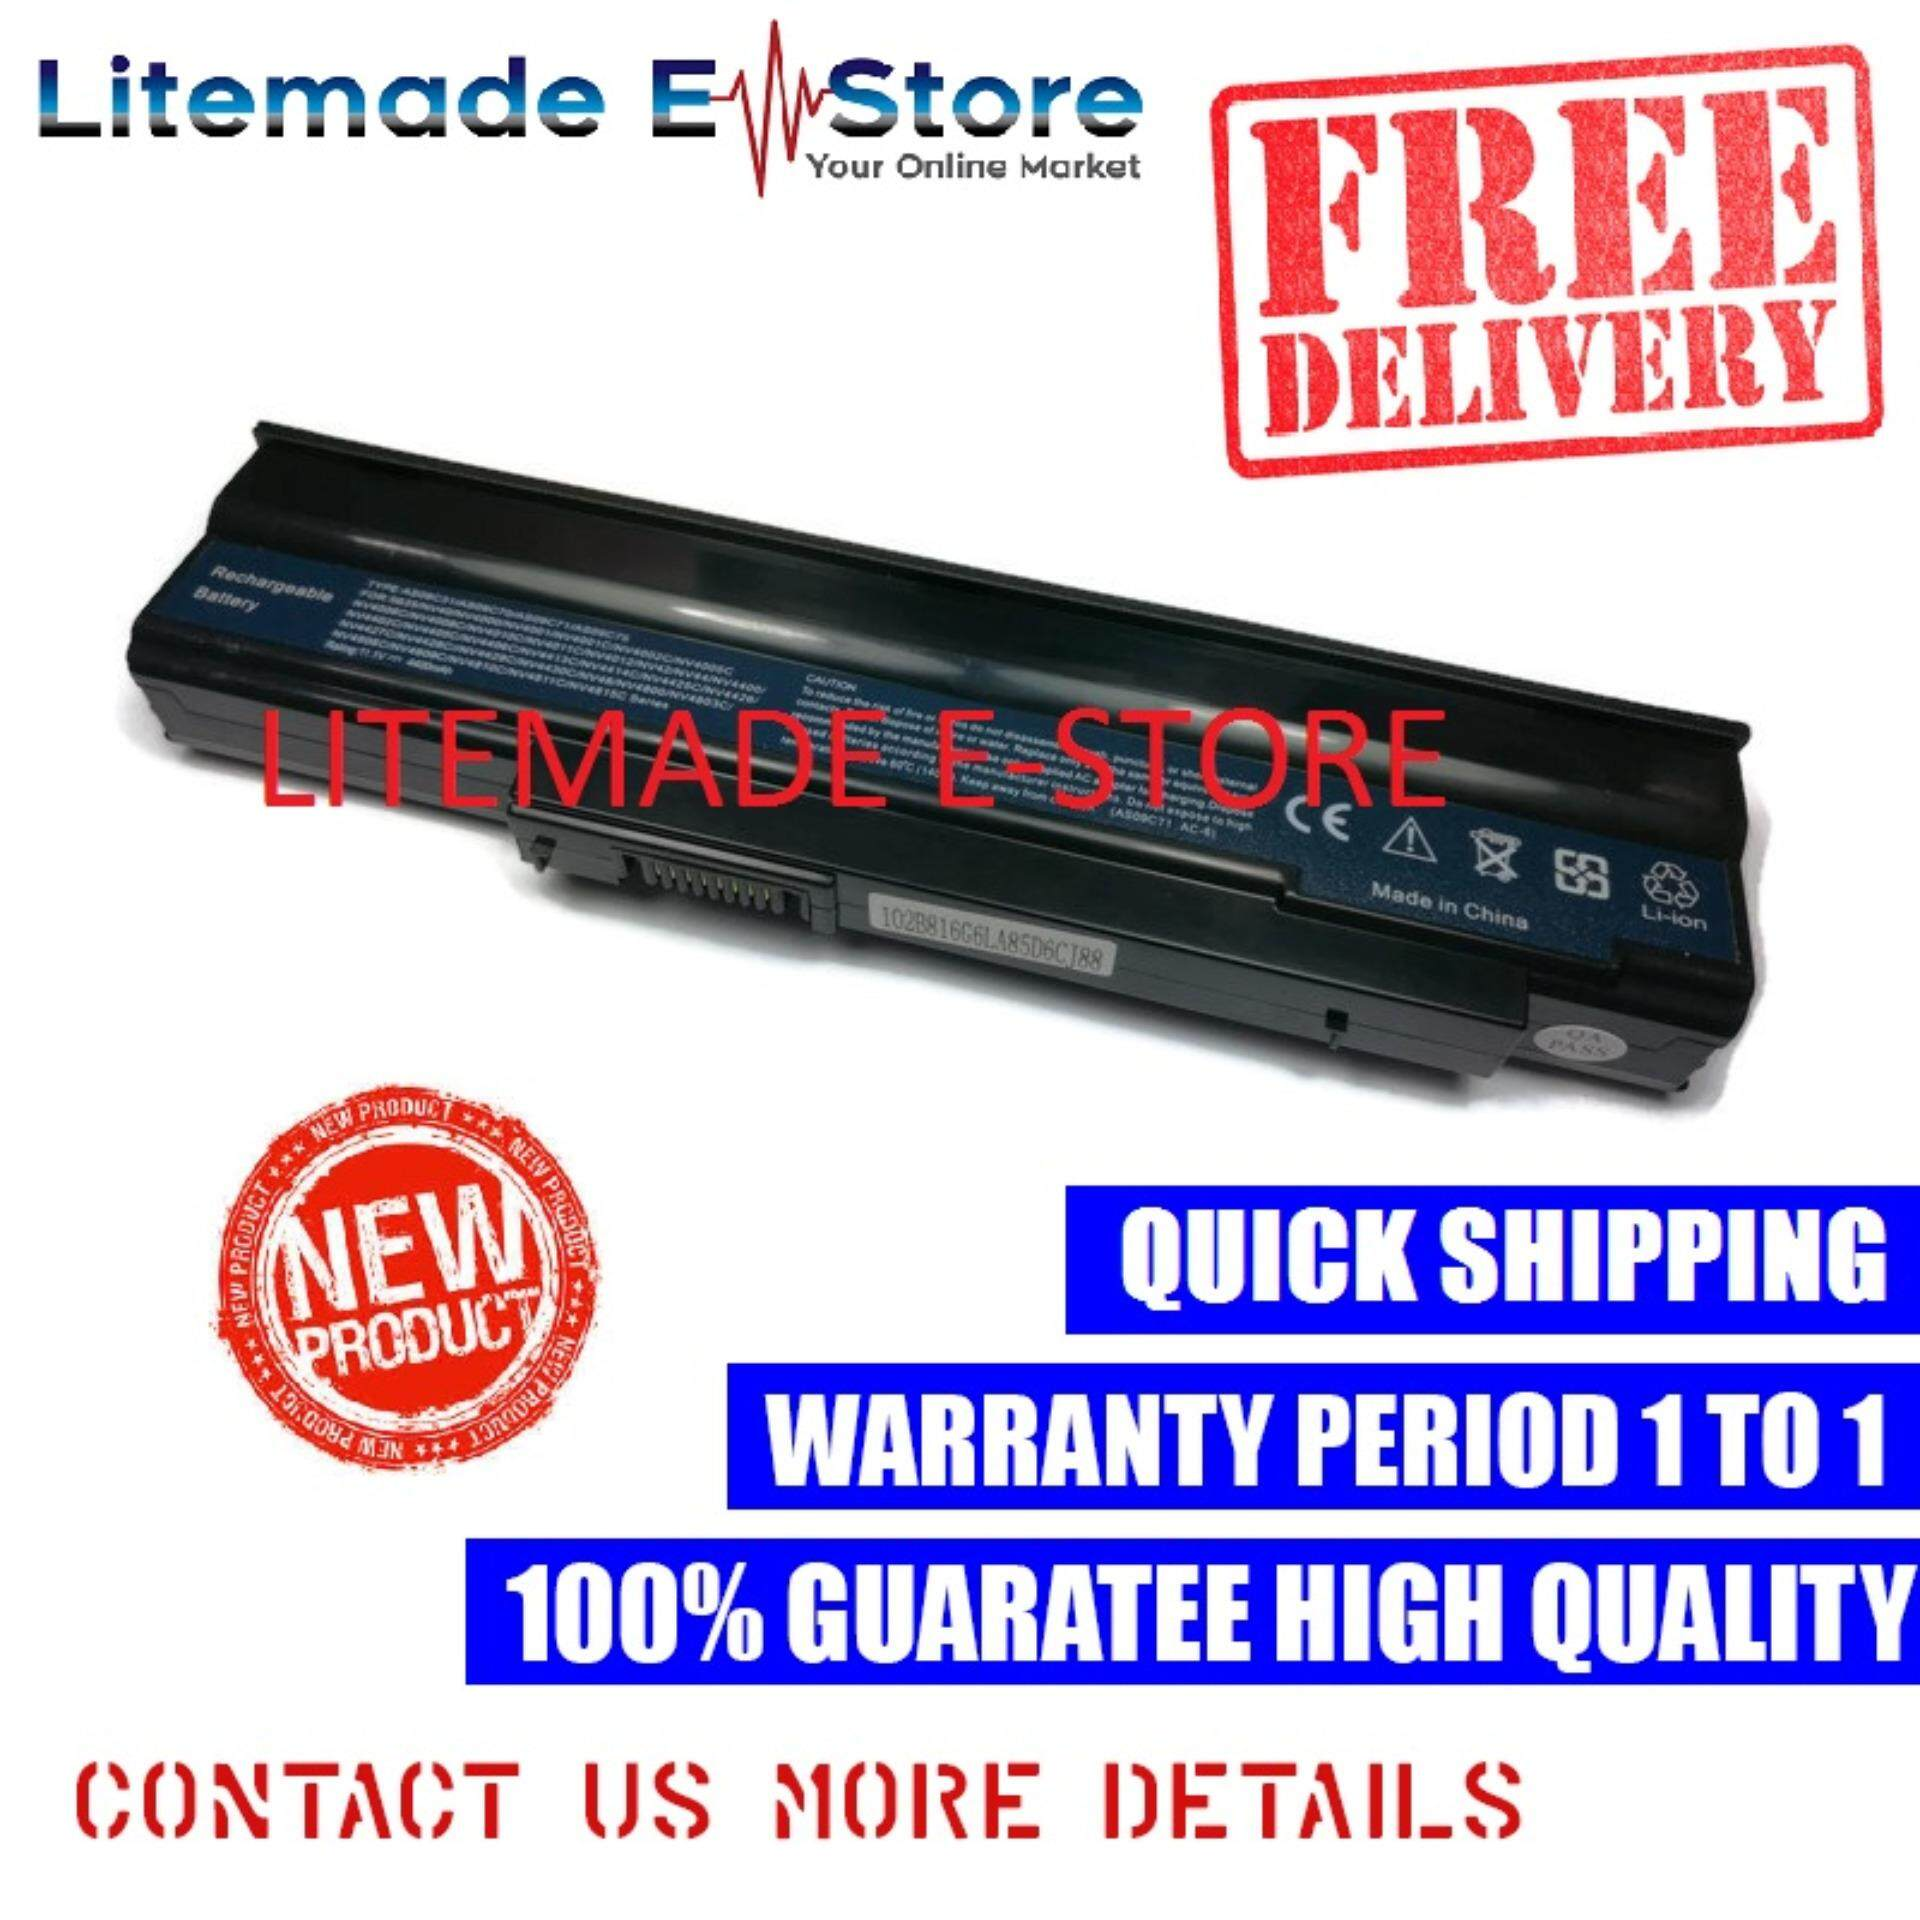 Acer LX.EE50X.050 Laptop Battery